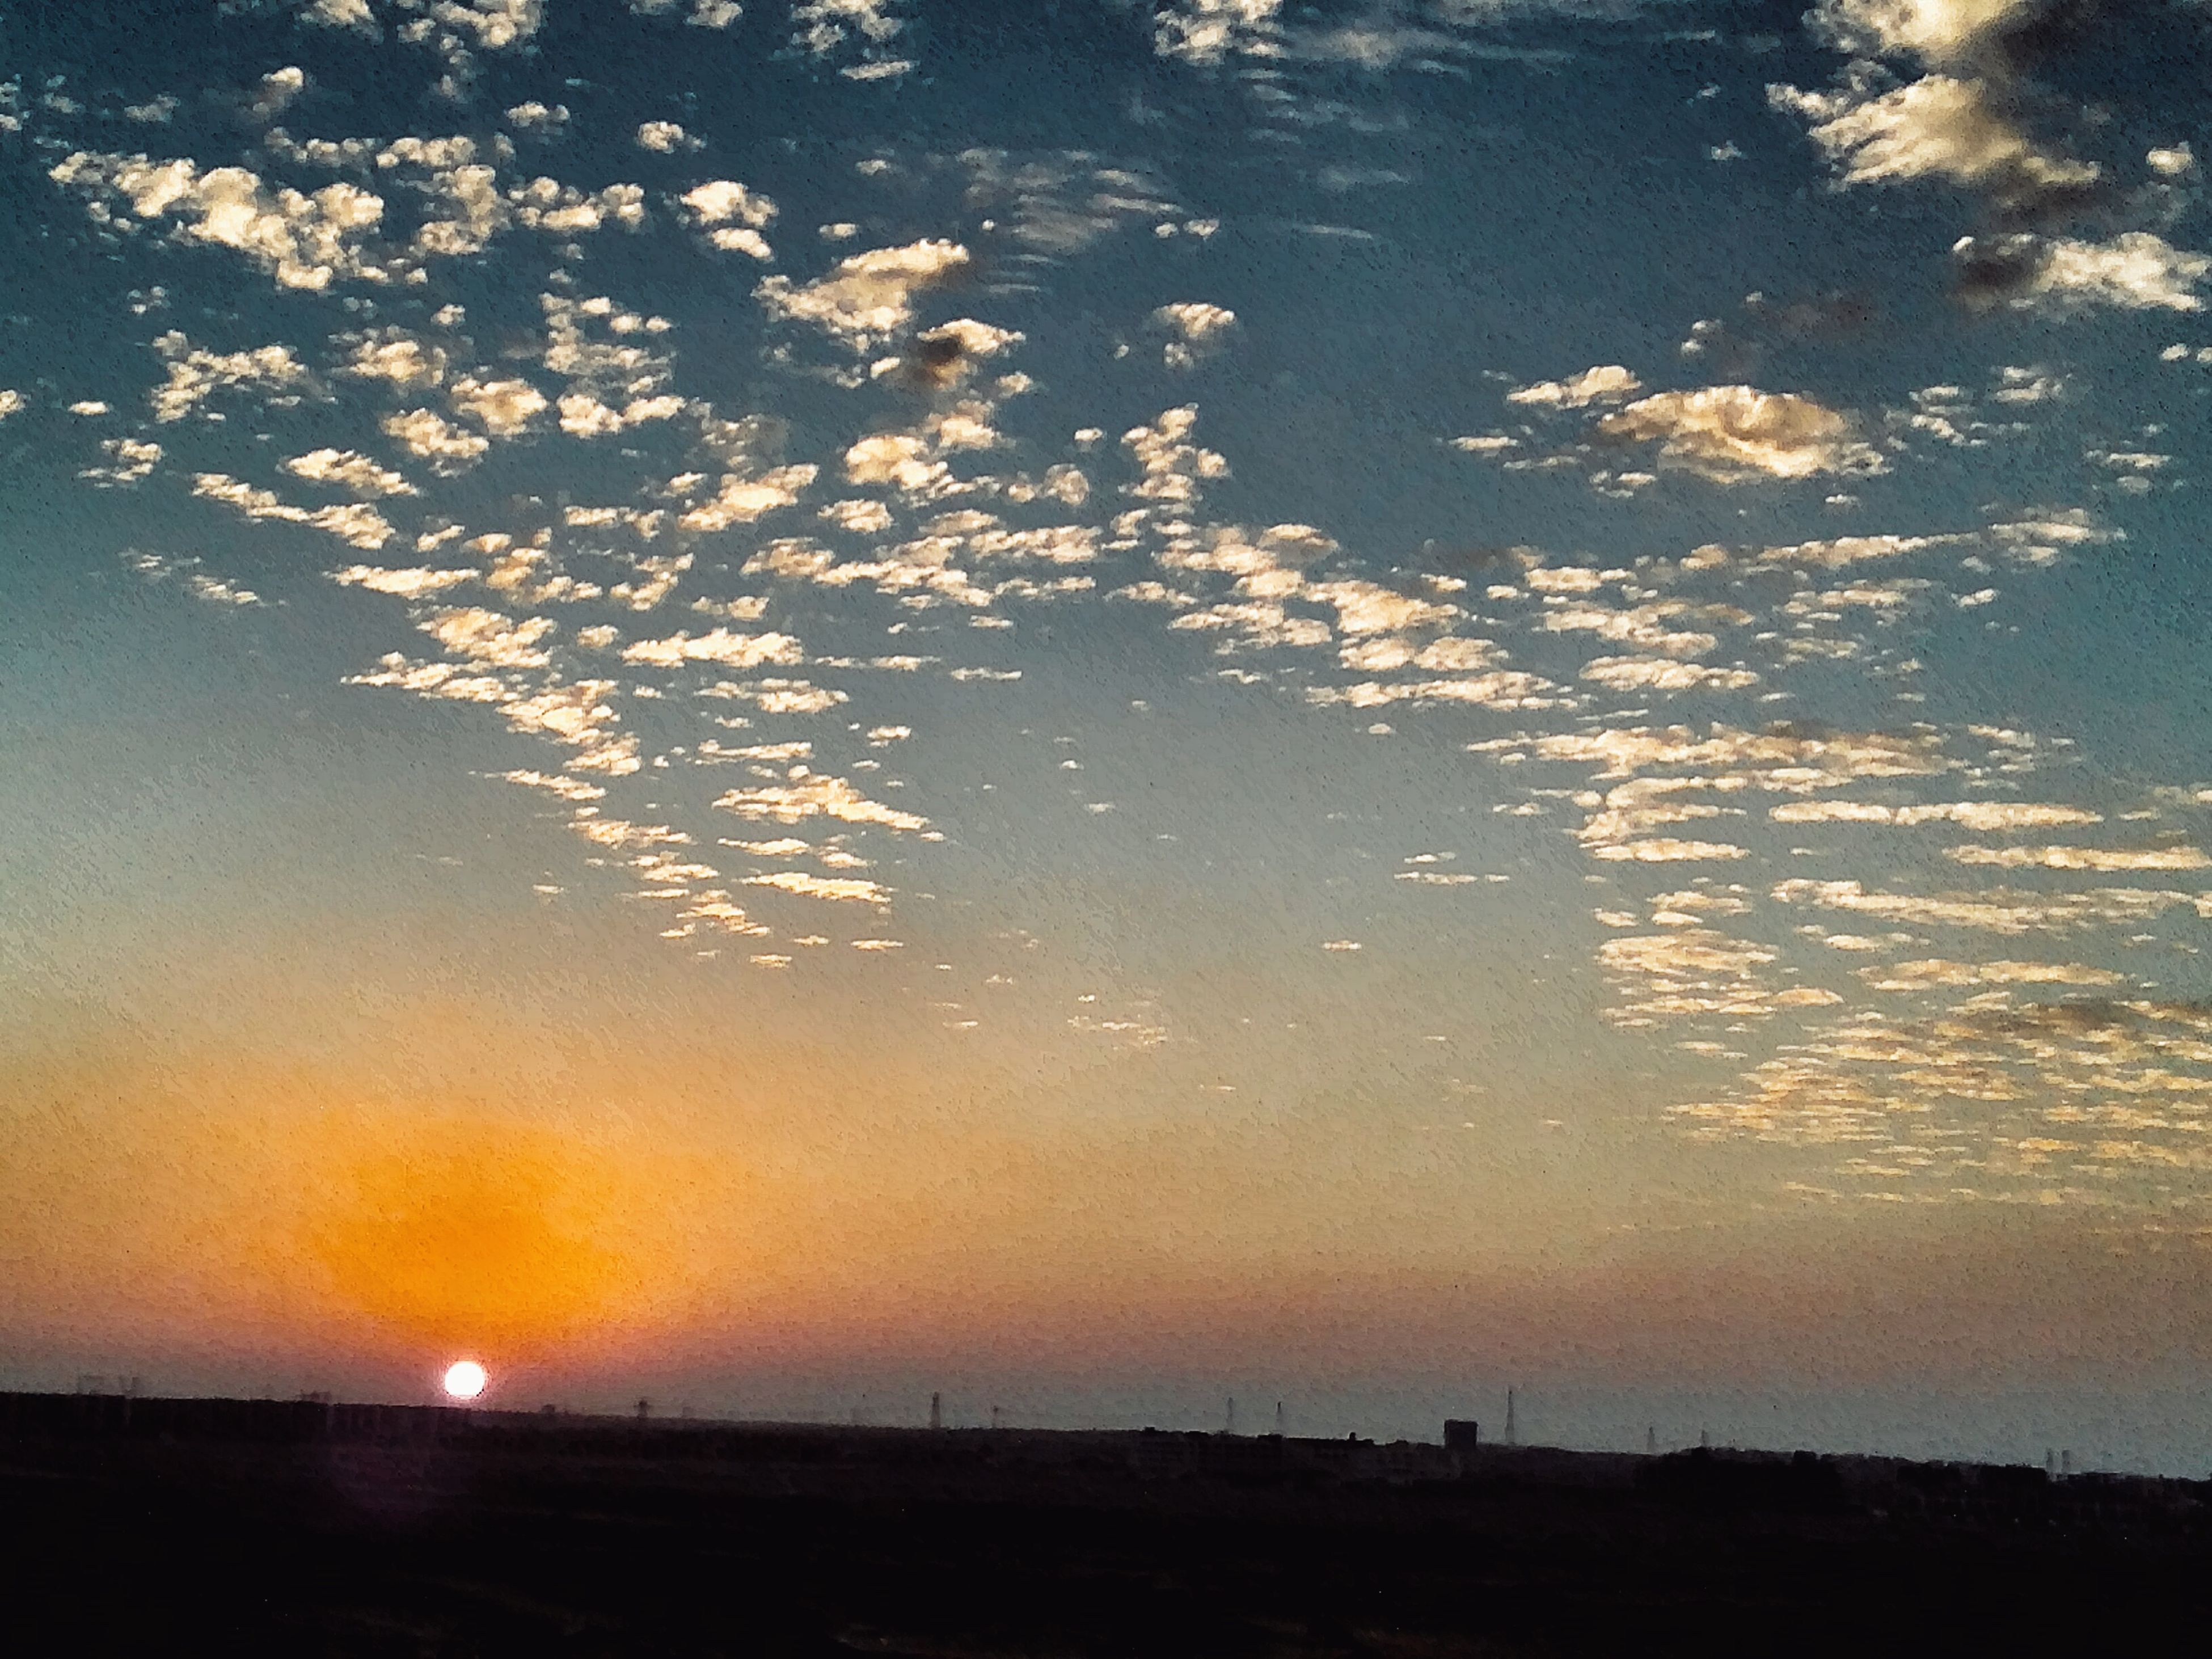 sunset, sky, cloud - sky, no people, outdoors, beauty in nature, nature, astronomy